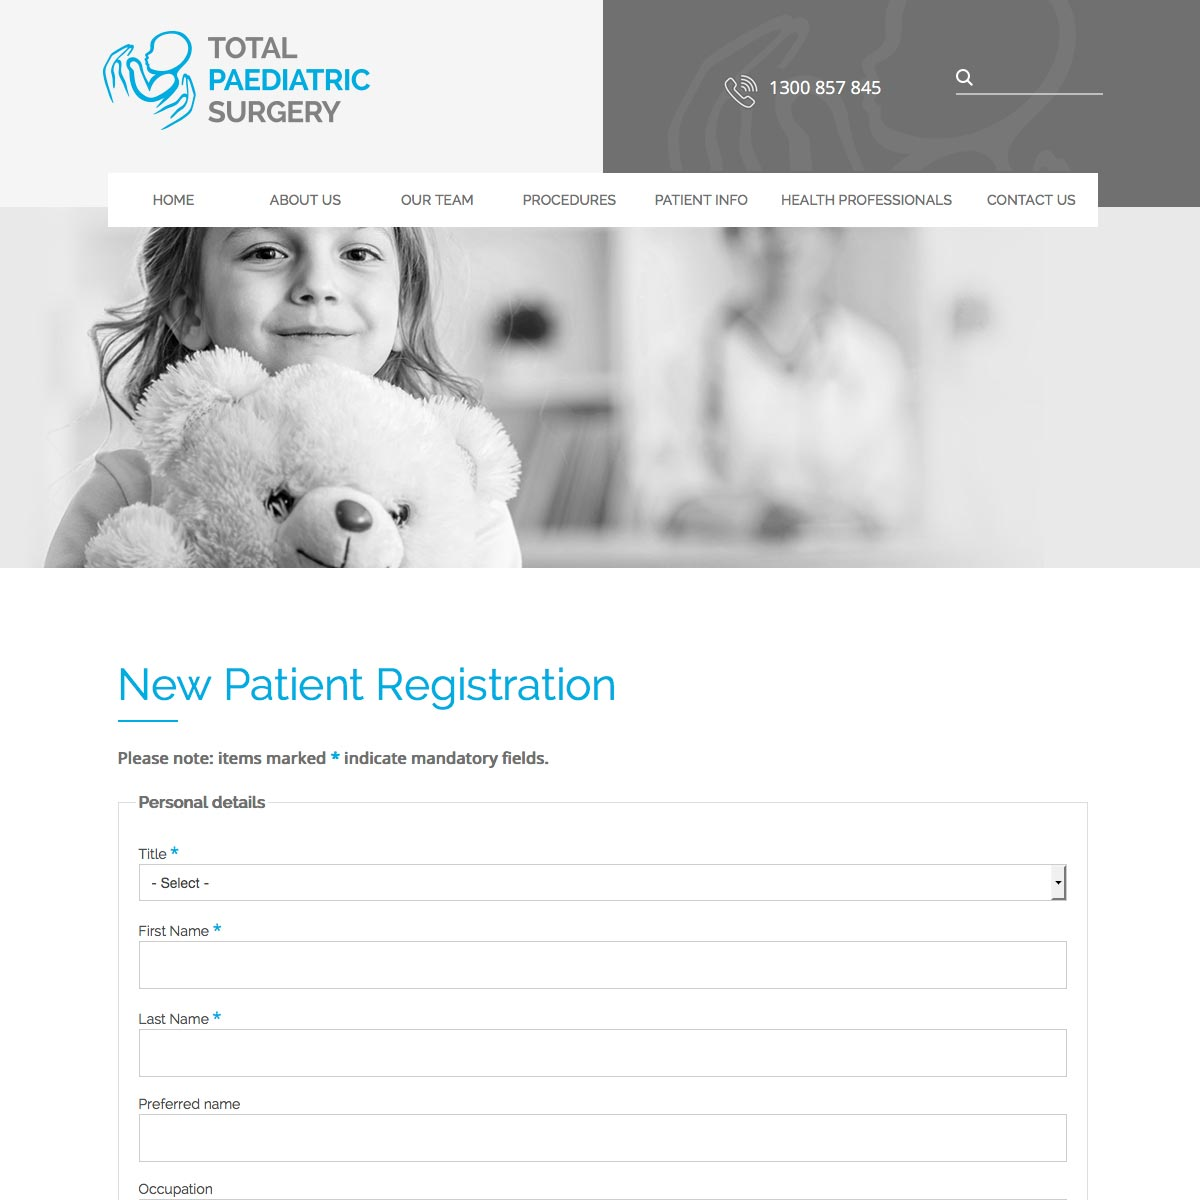 Total Paediatric Surgery New Patient Registration